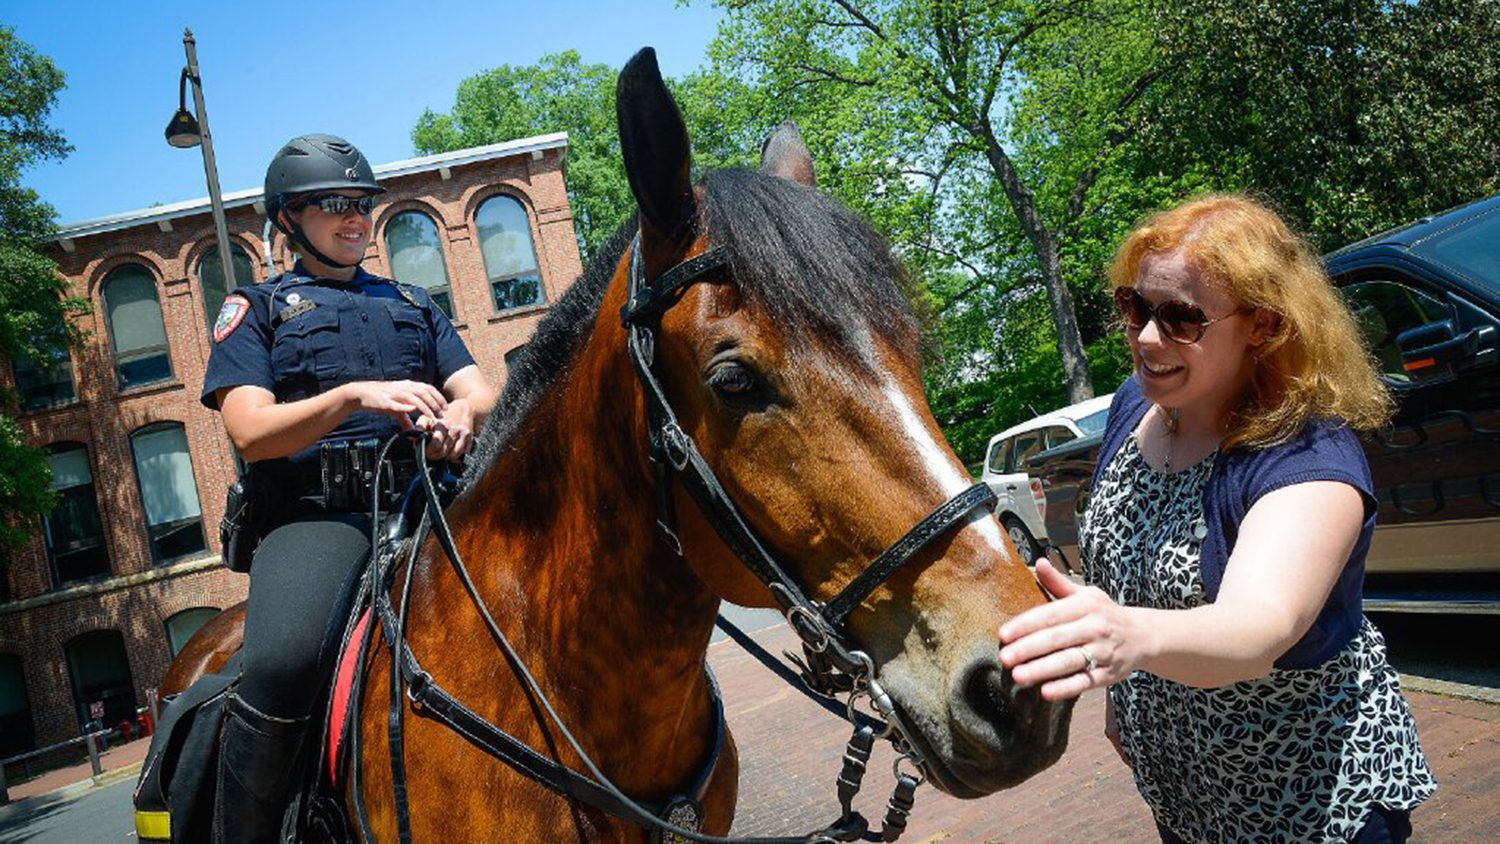 Visitor on campus petting a campus police horse.